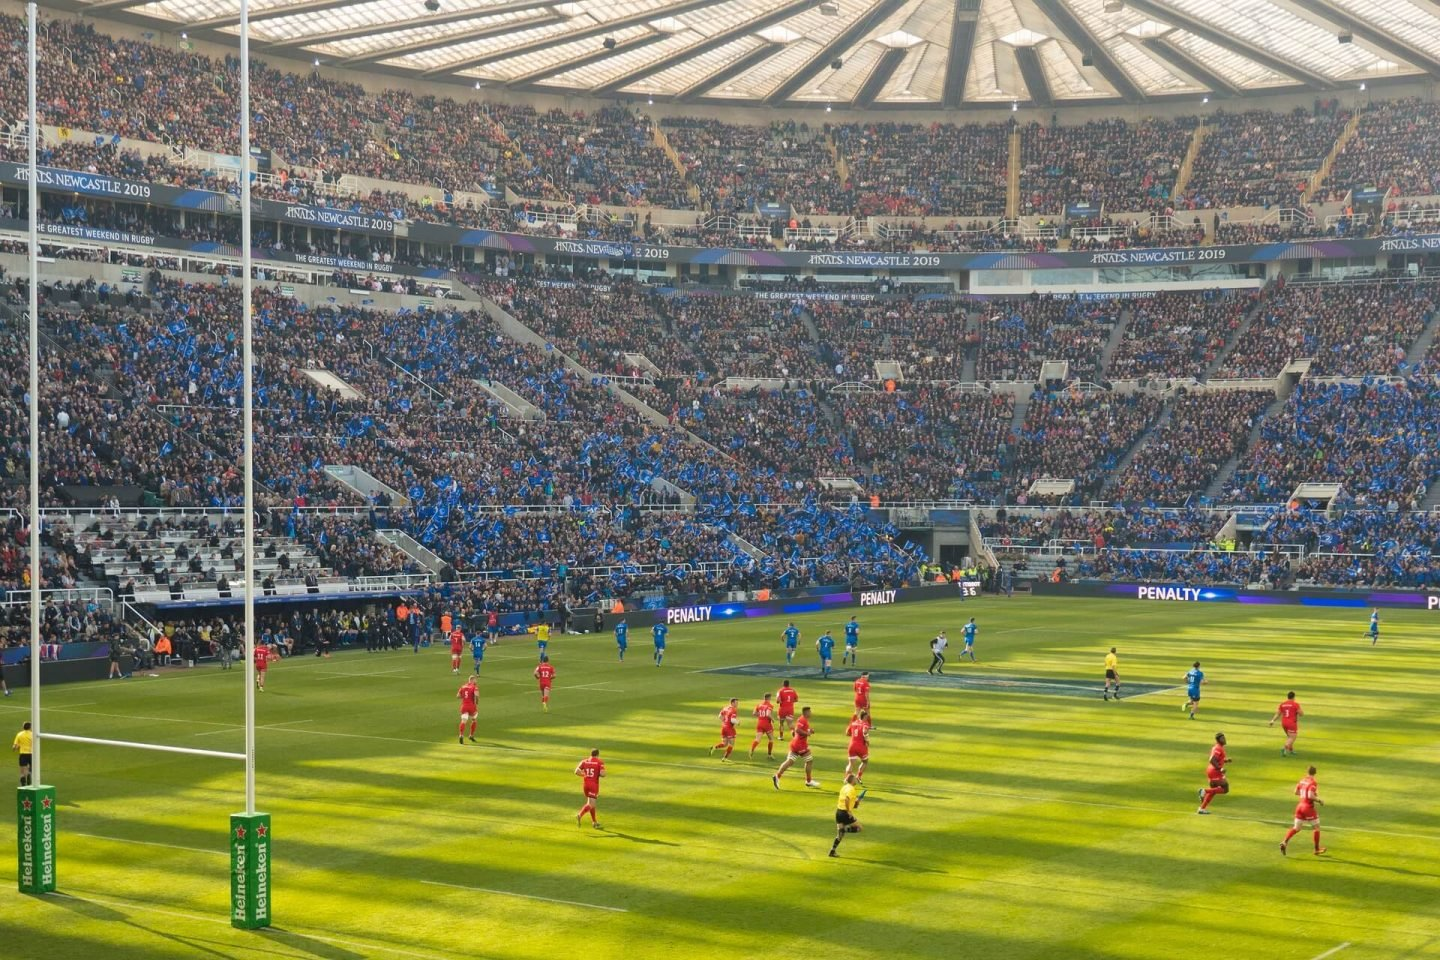 Rugby union quiz questions 2020 - Heineken Cup game